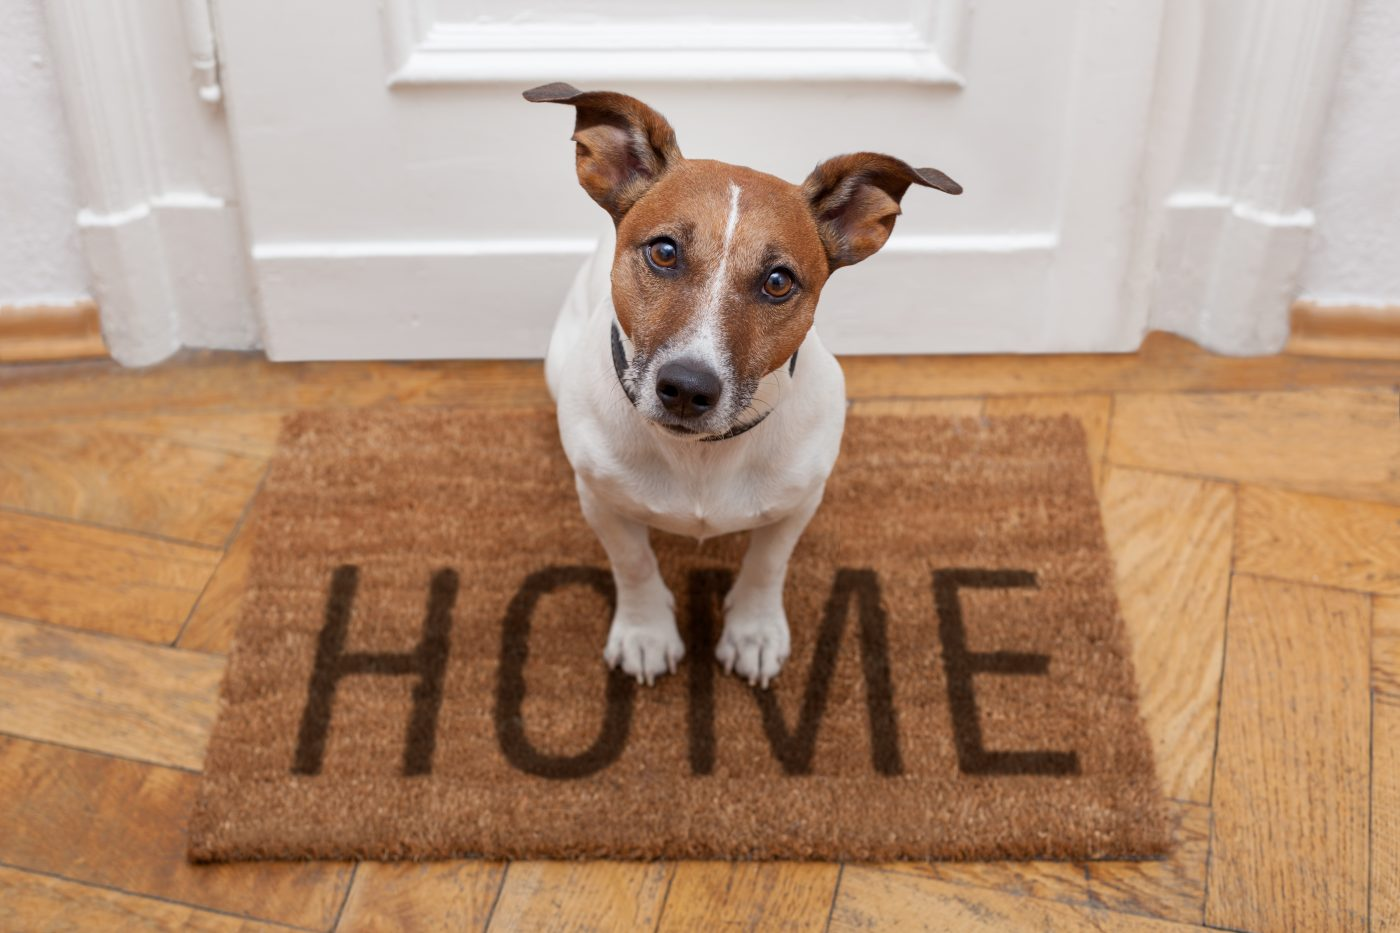 Make Reunification Easy: Update Your Pet's Microchip